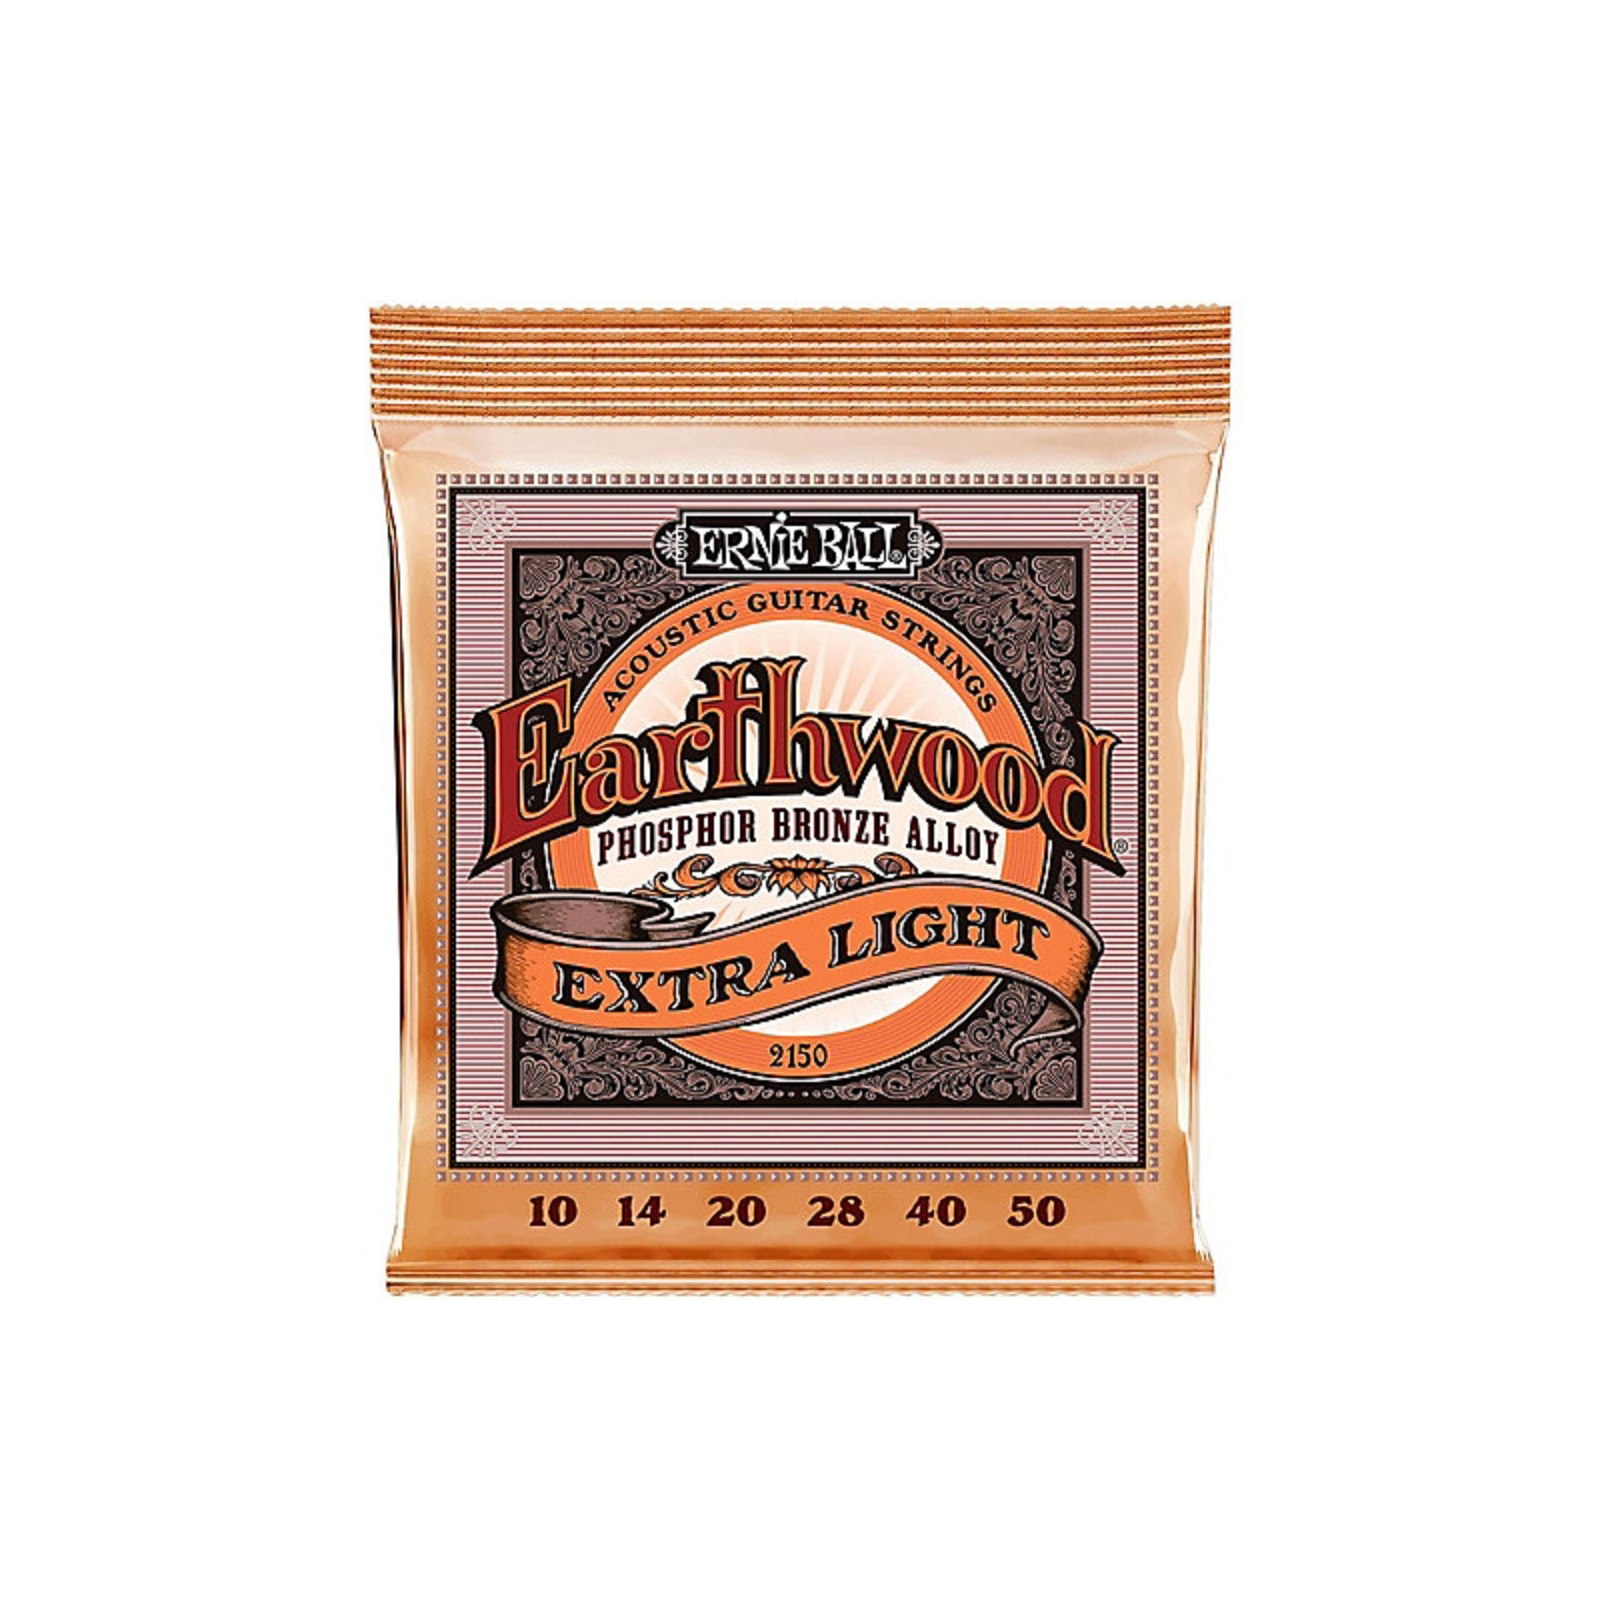 ERNIE BALL EARTHWOOD PHOS BRONZE-X-LITE-10/50